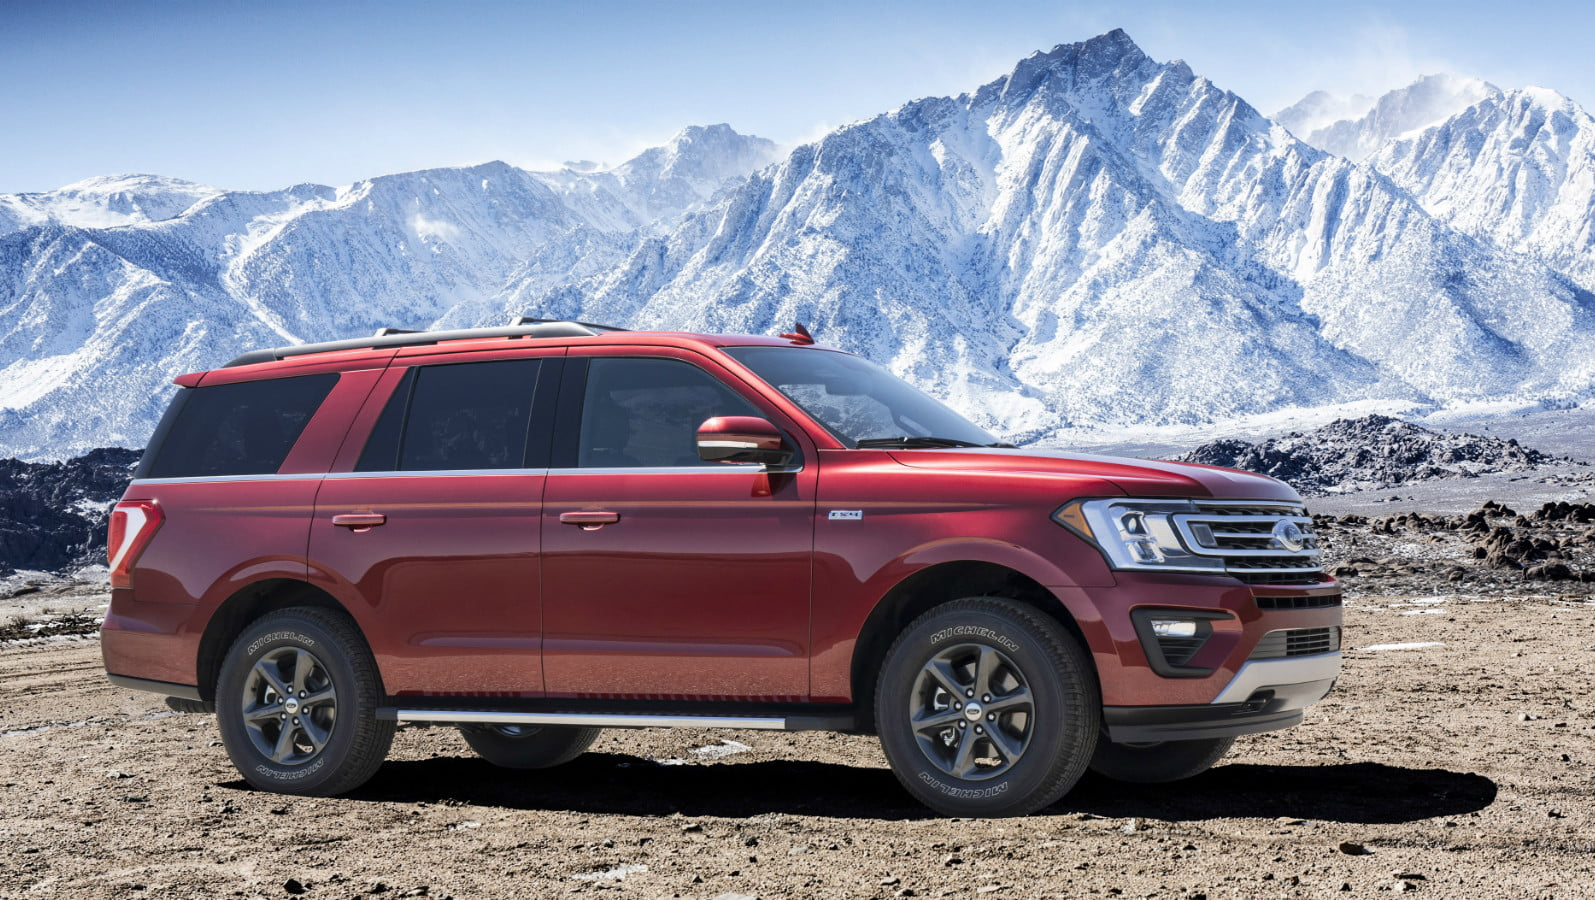 2018 Expedition FX4 Off-road package